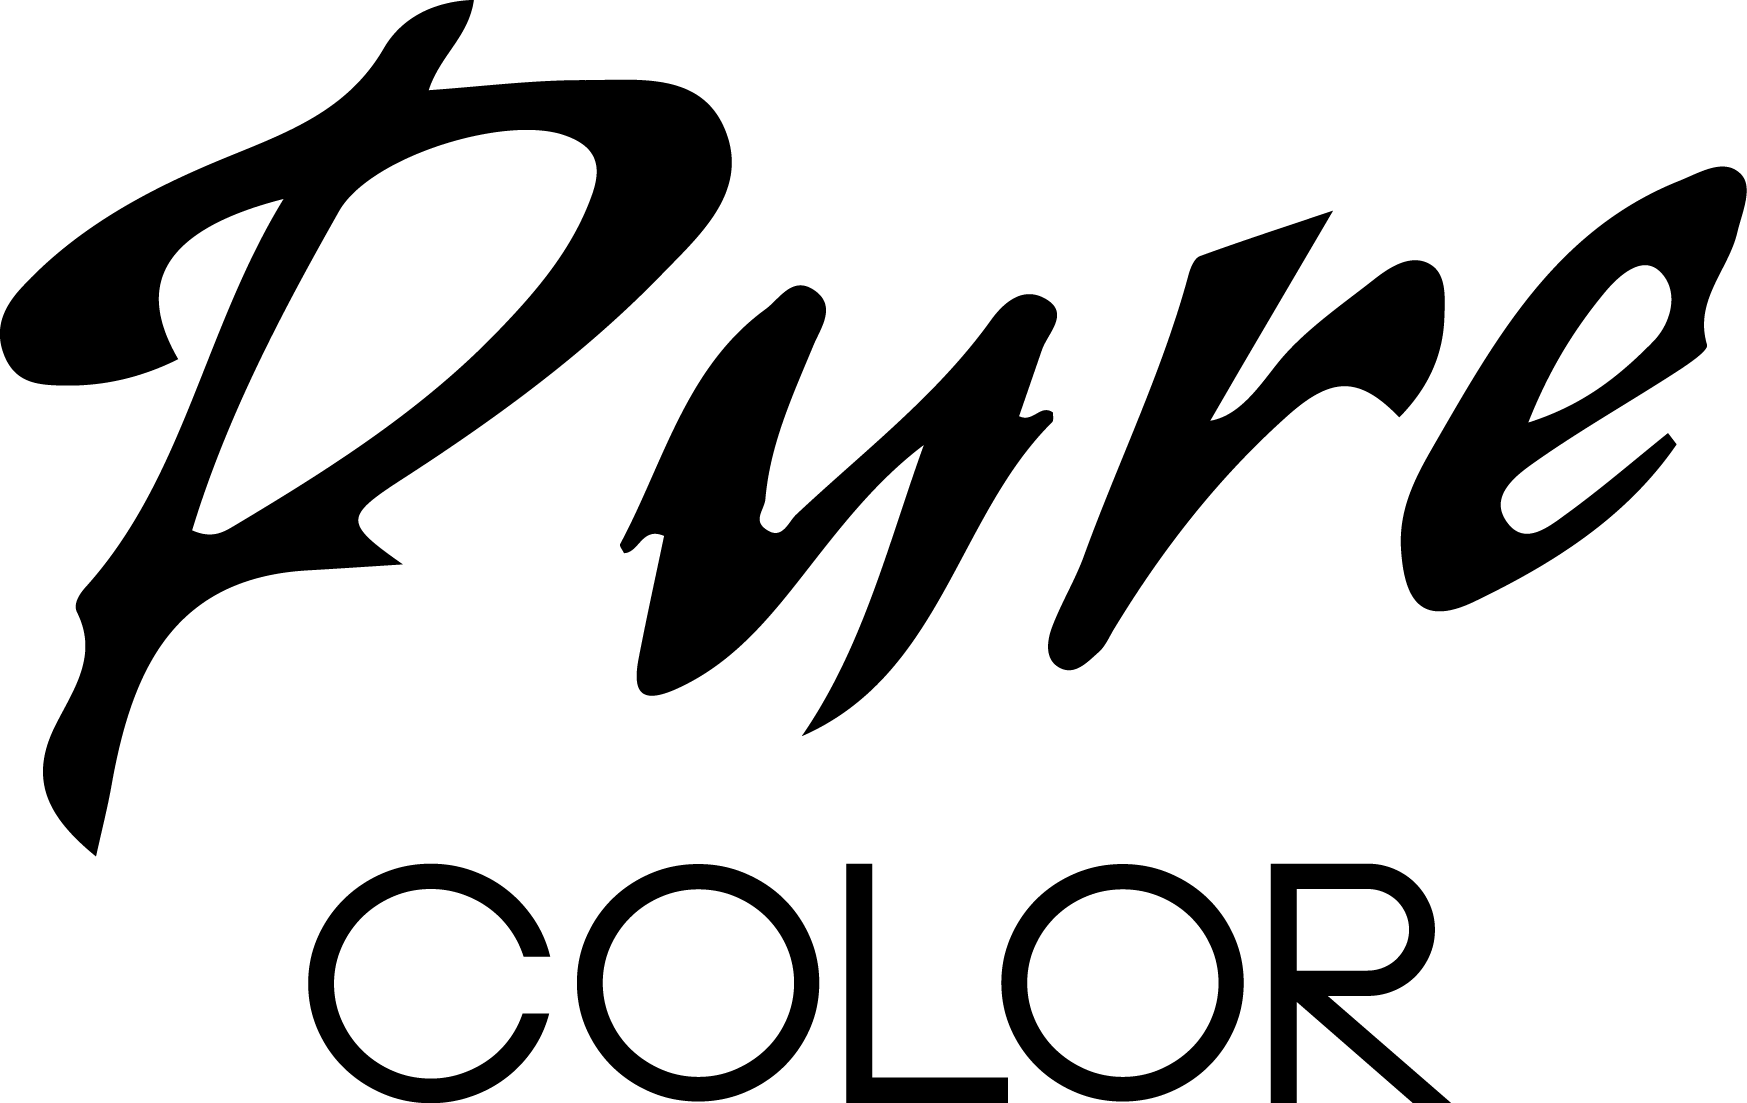 Pure color 1563271934